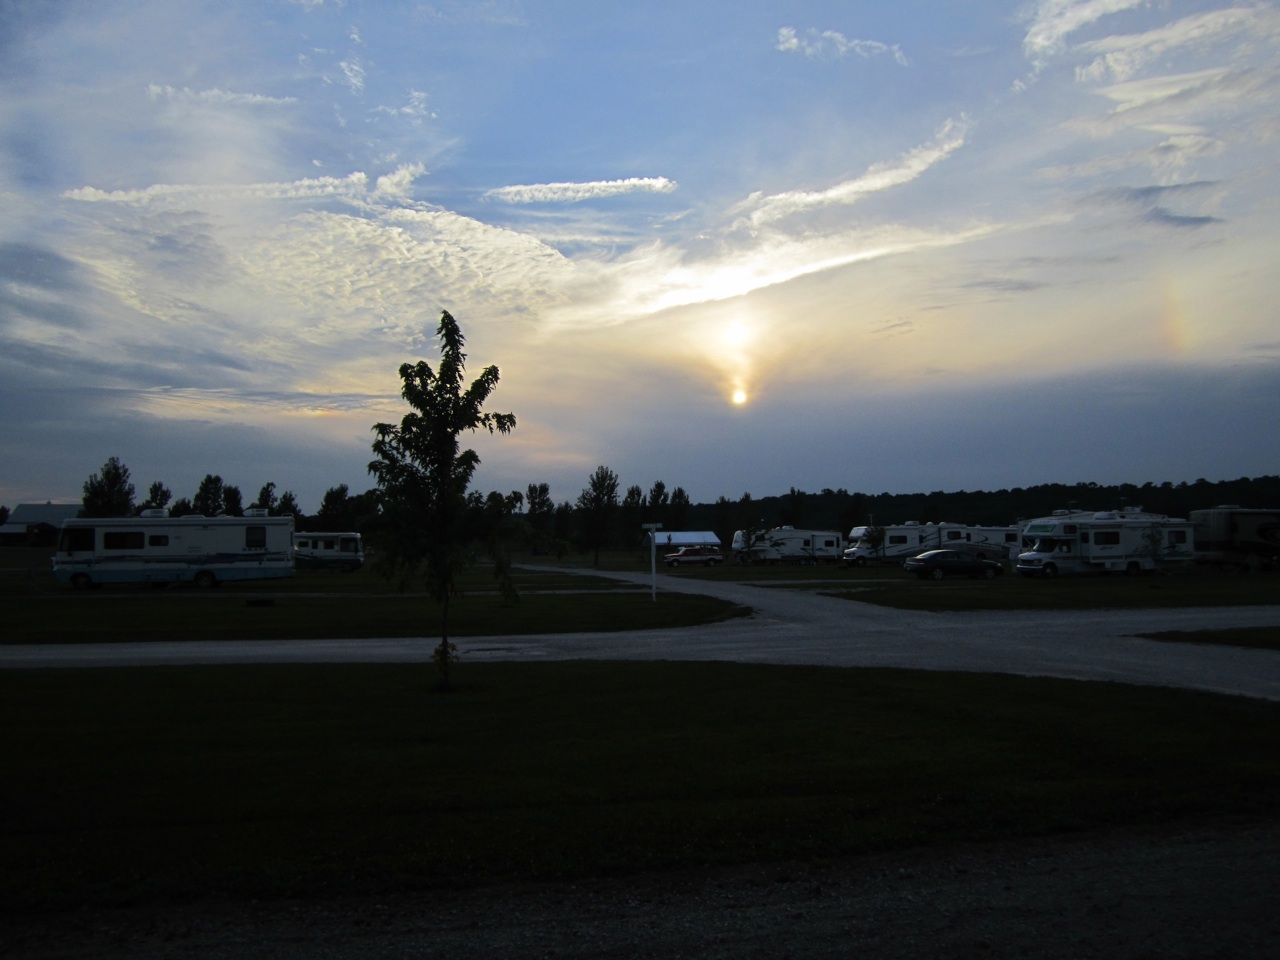 An Iowa Evening At The Amana RV Park In Amana, Iowa.